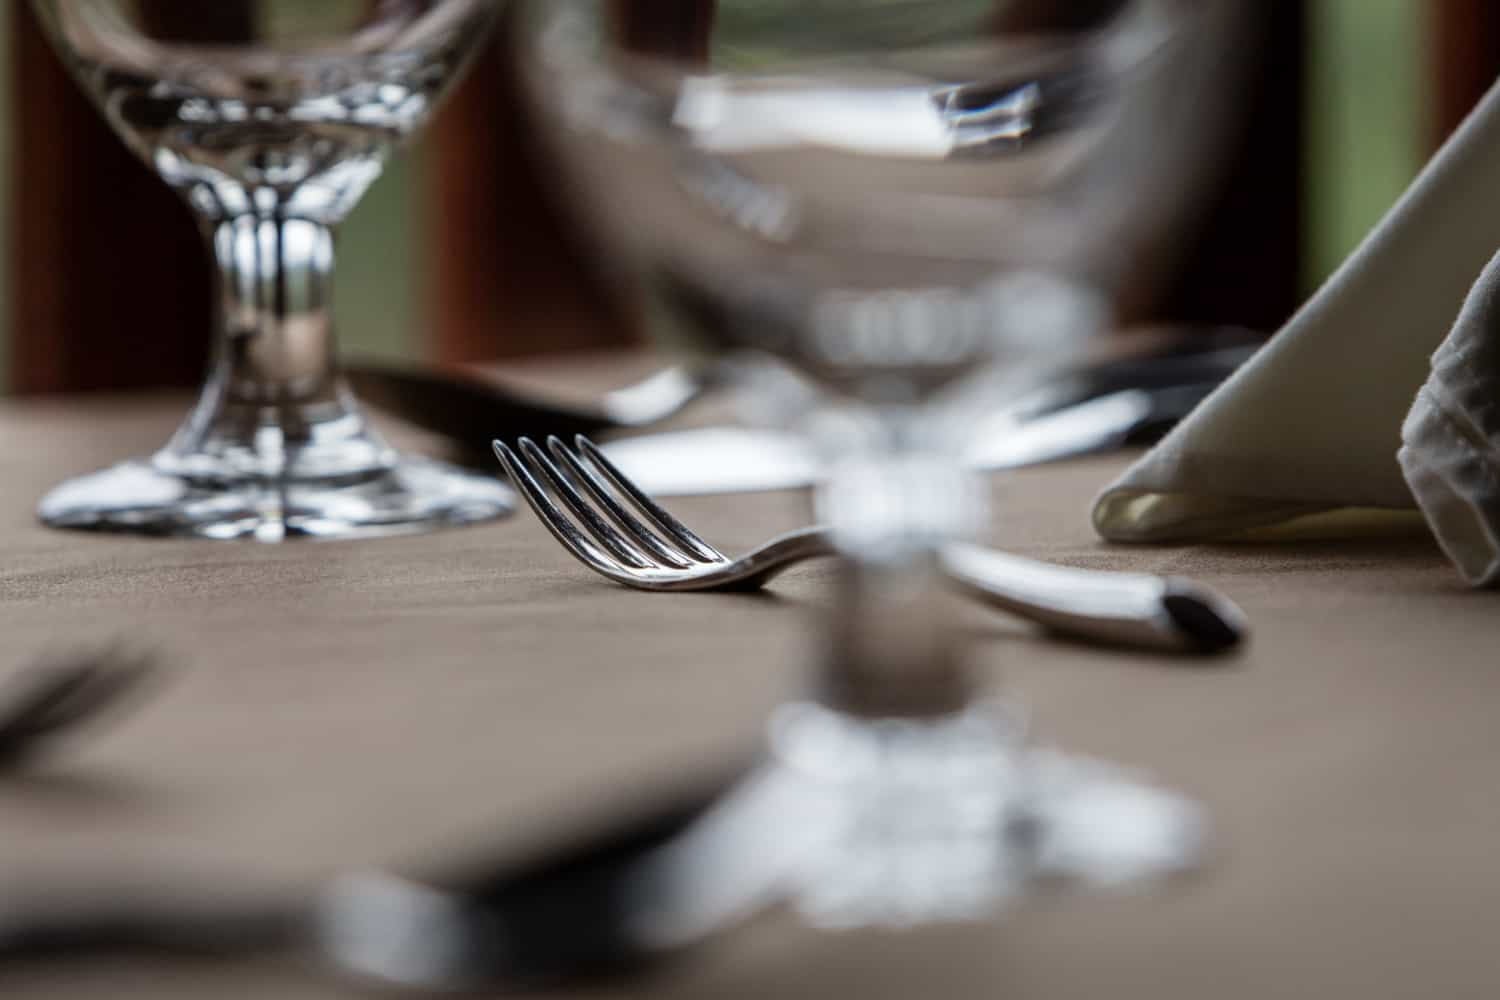 Detailed image of silverware and glassware in elegant Peace Lodge restaurant in Poas.